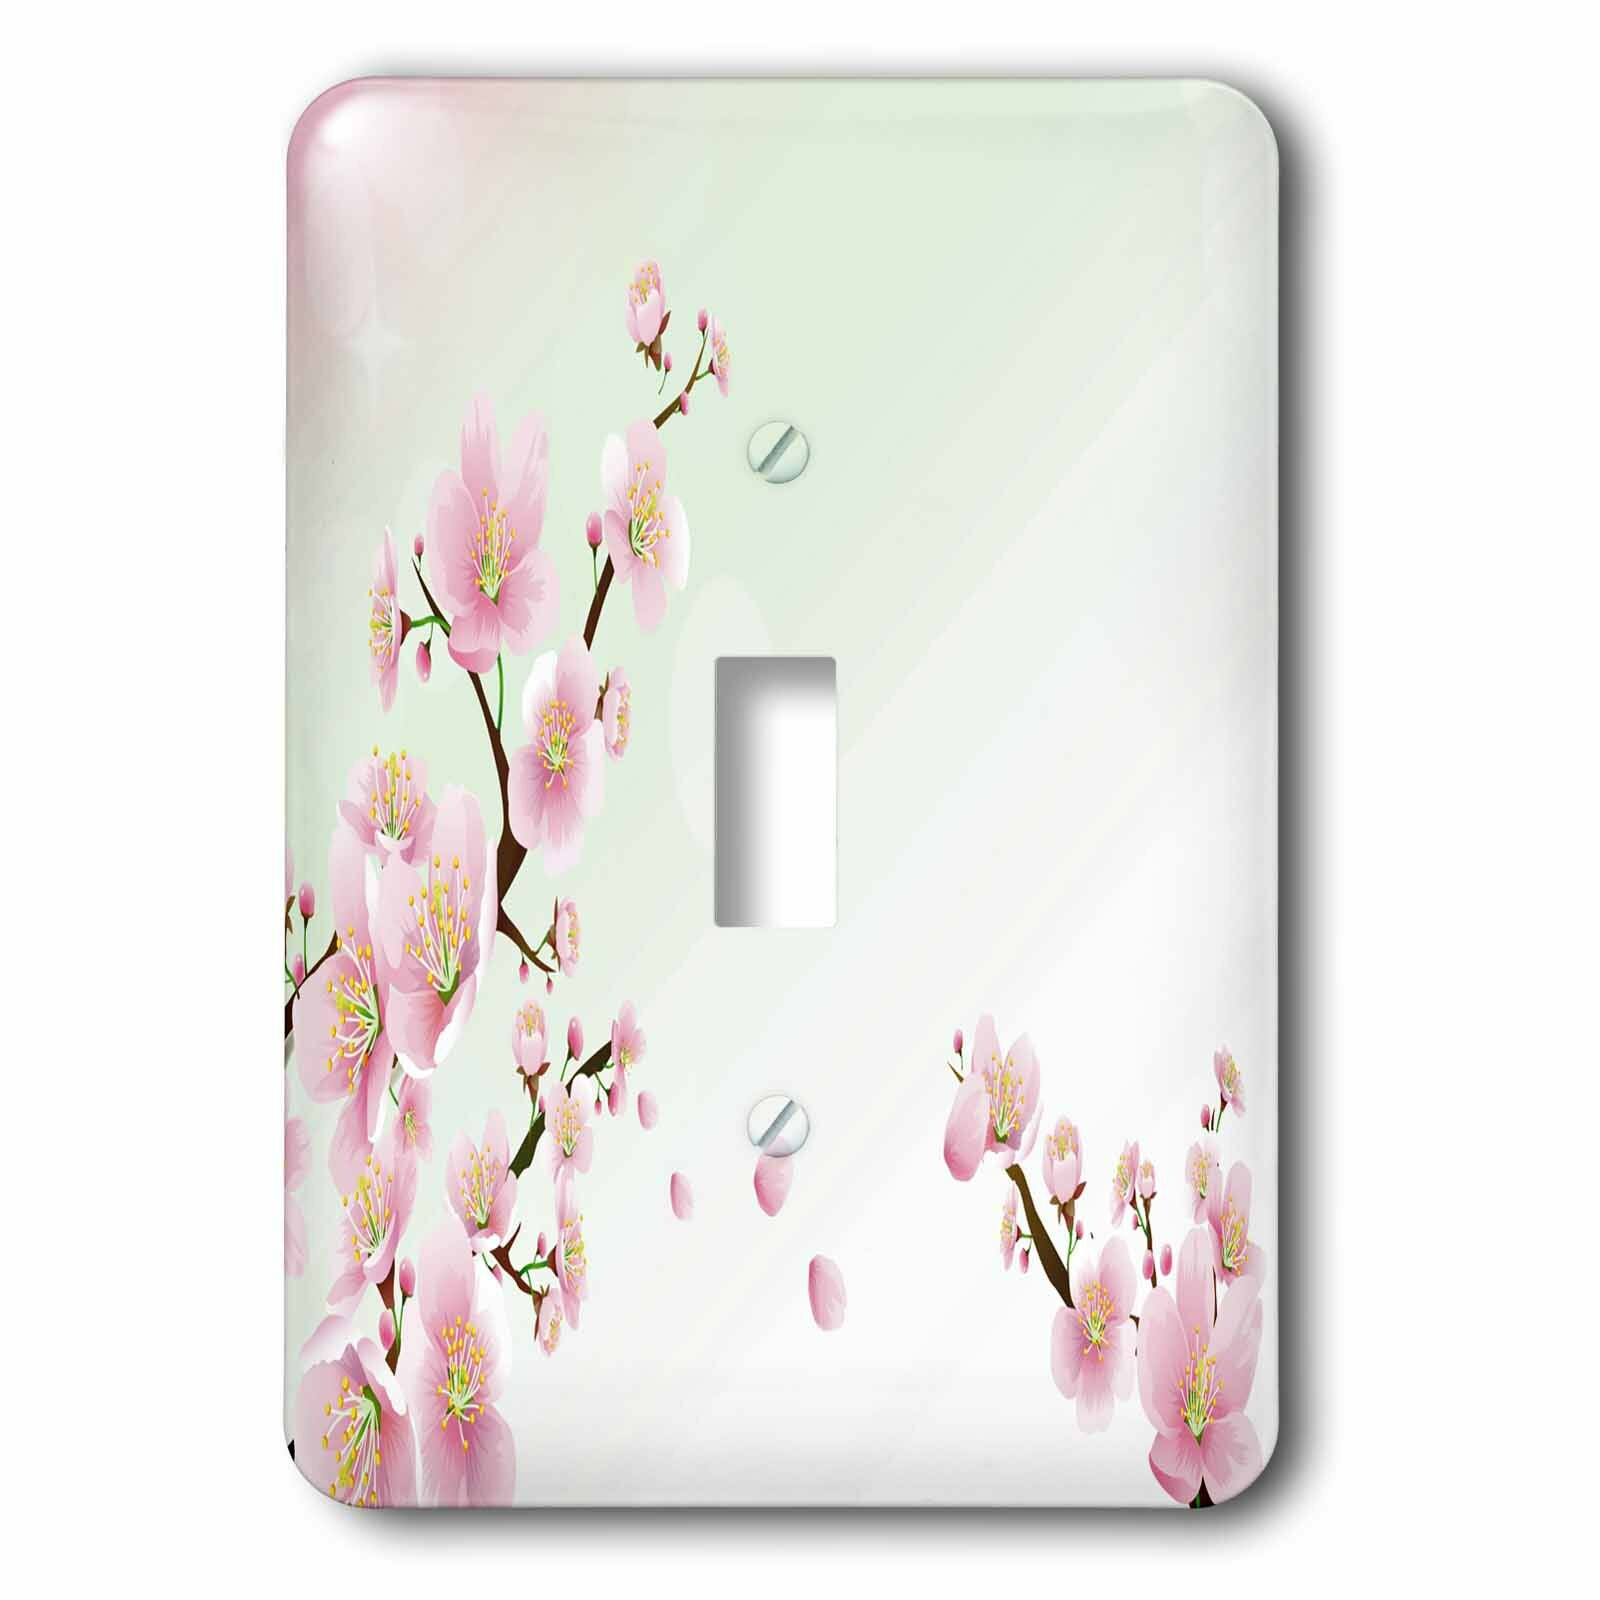 3drose Cherry Blossoms 1 Gang Toggle Light Switch Wall Plate Wayfair